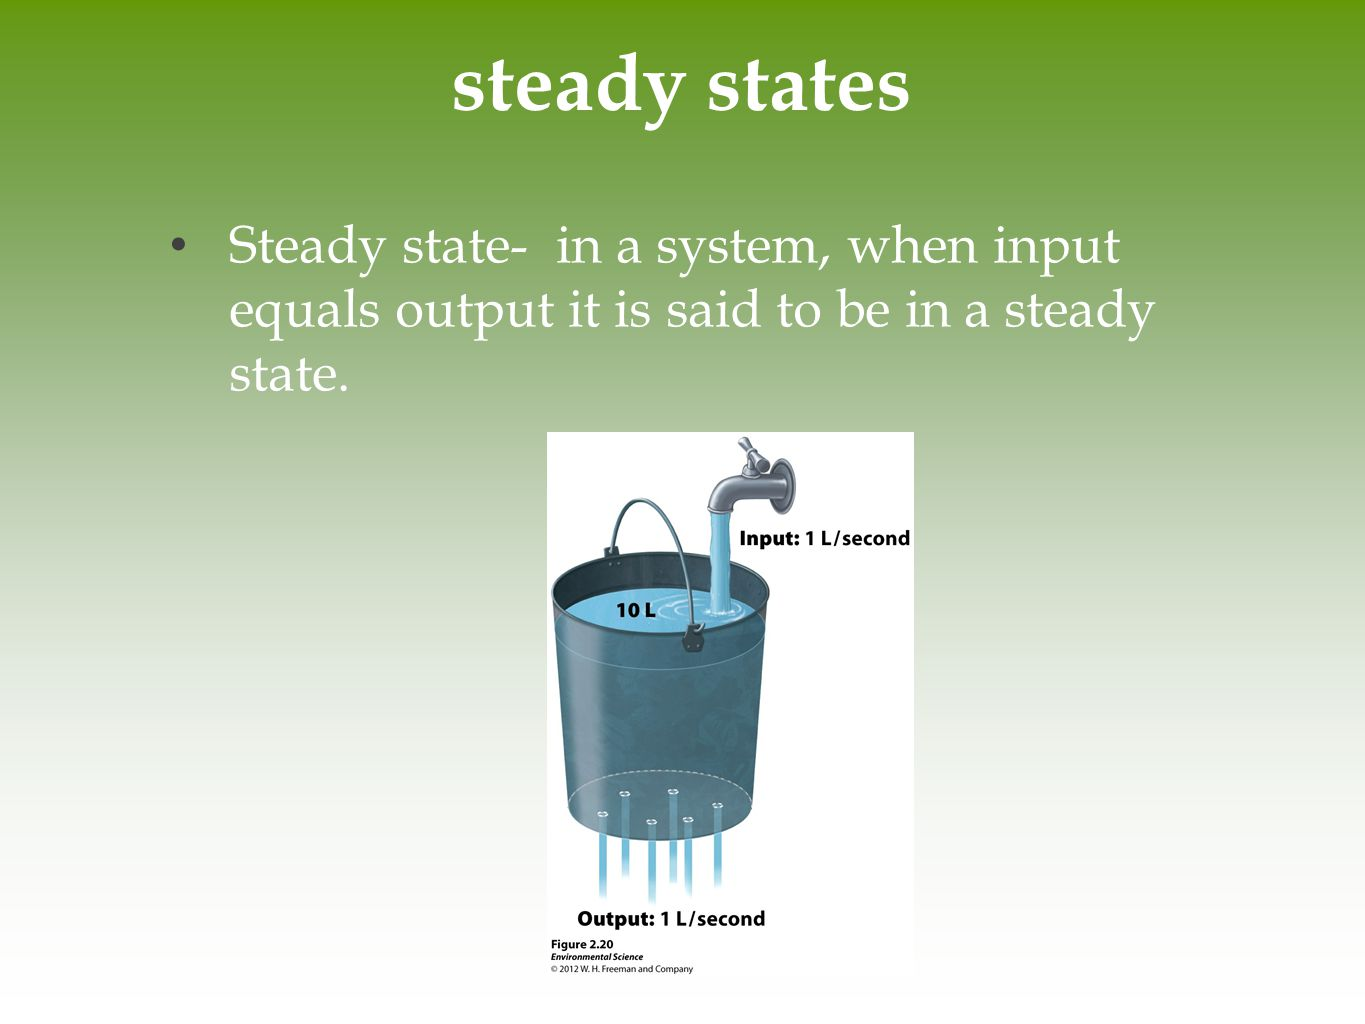 steady states Steady state- in a system, when input equals output it is said to be in a steady state.